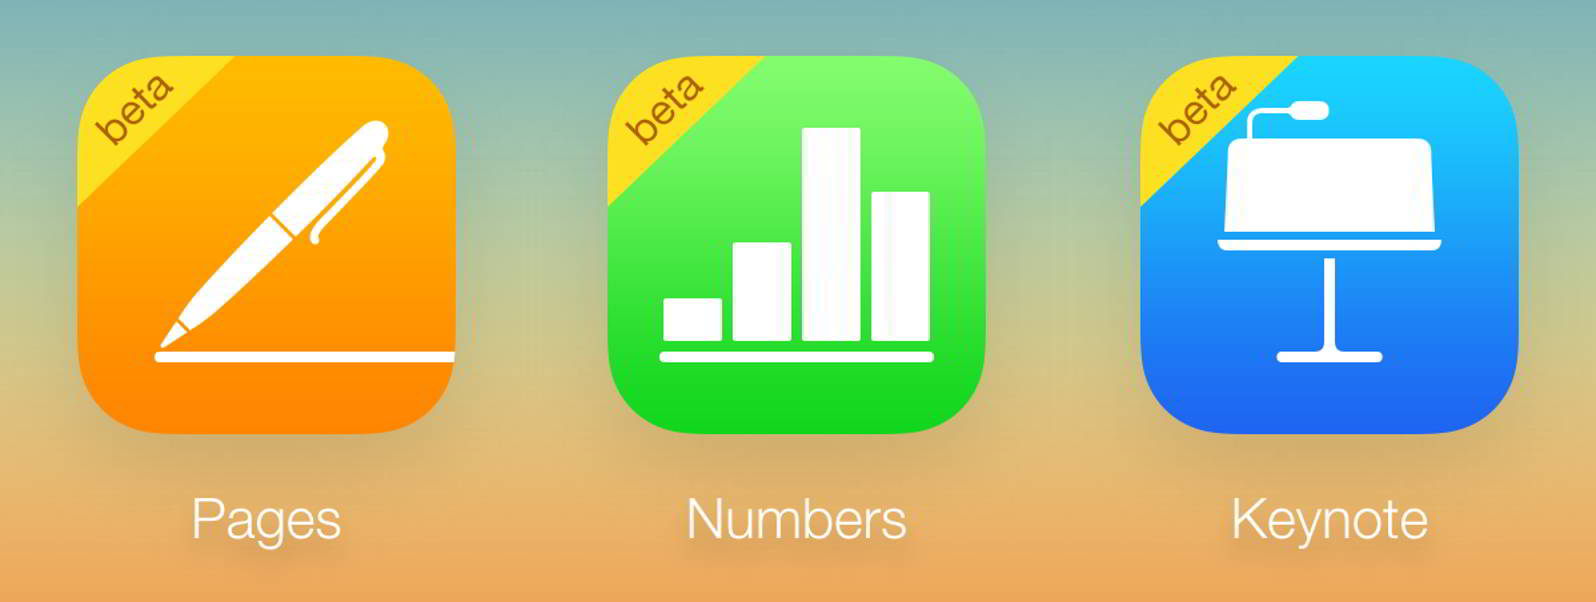 Pages, Numbers, Keynote gratuit